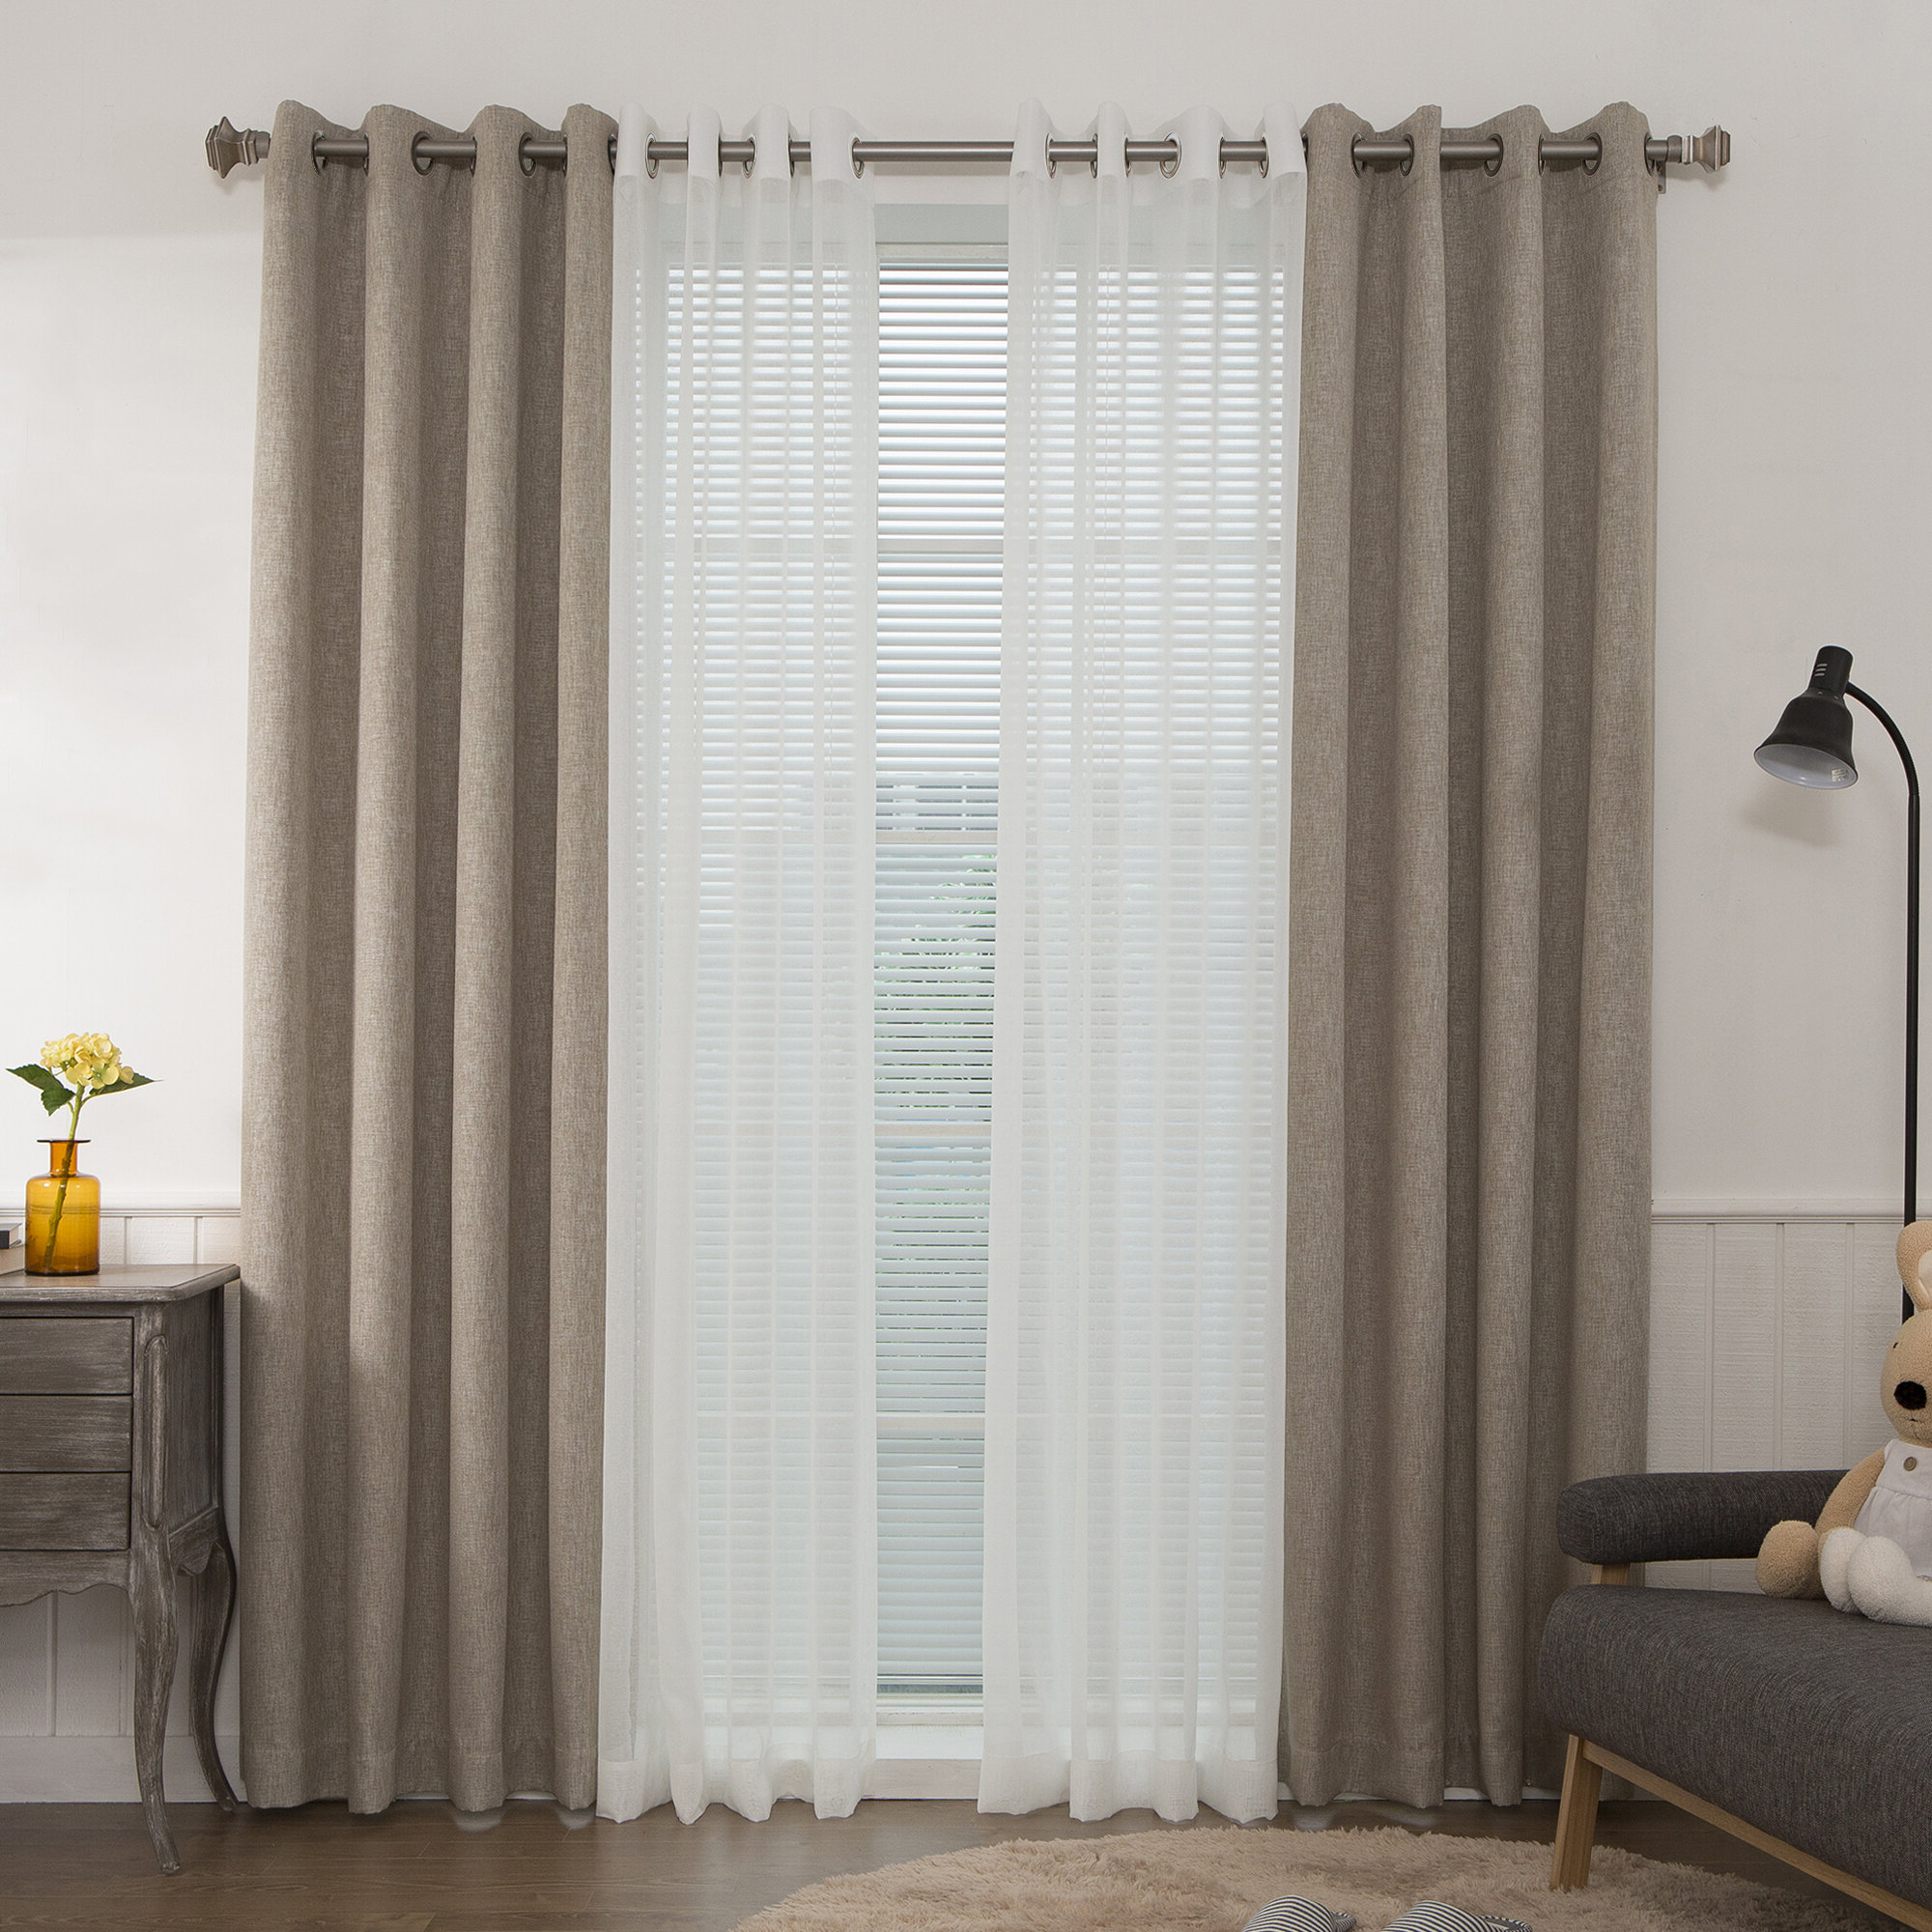 Mix And Match Blackout Blackout Curtains Panel Sets With Regard To Best And Newest Best Home Fashion, Inc (View 4 of 20)